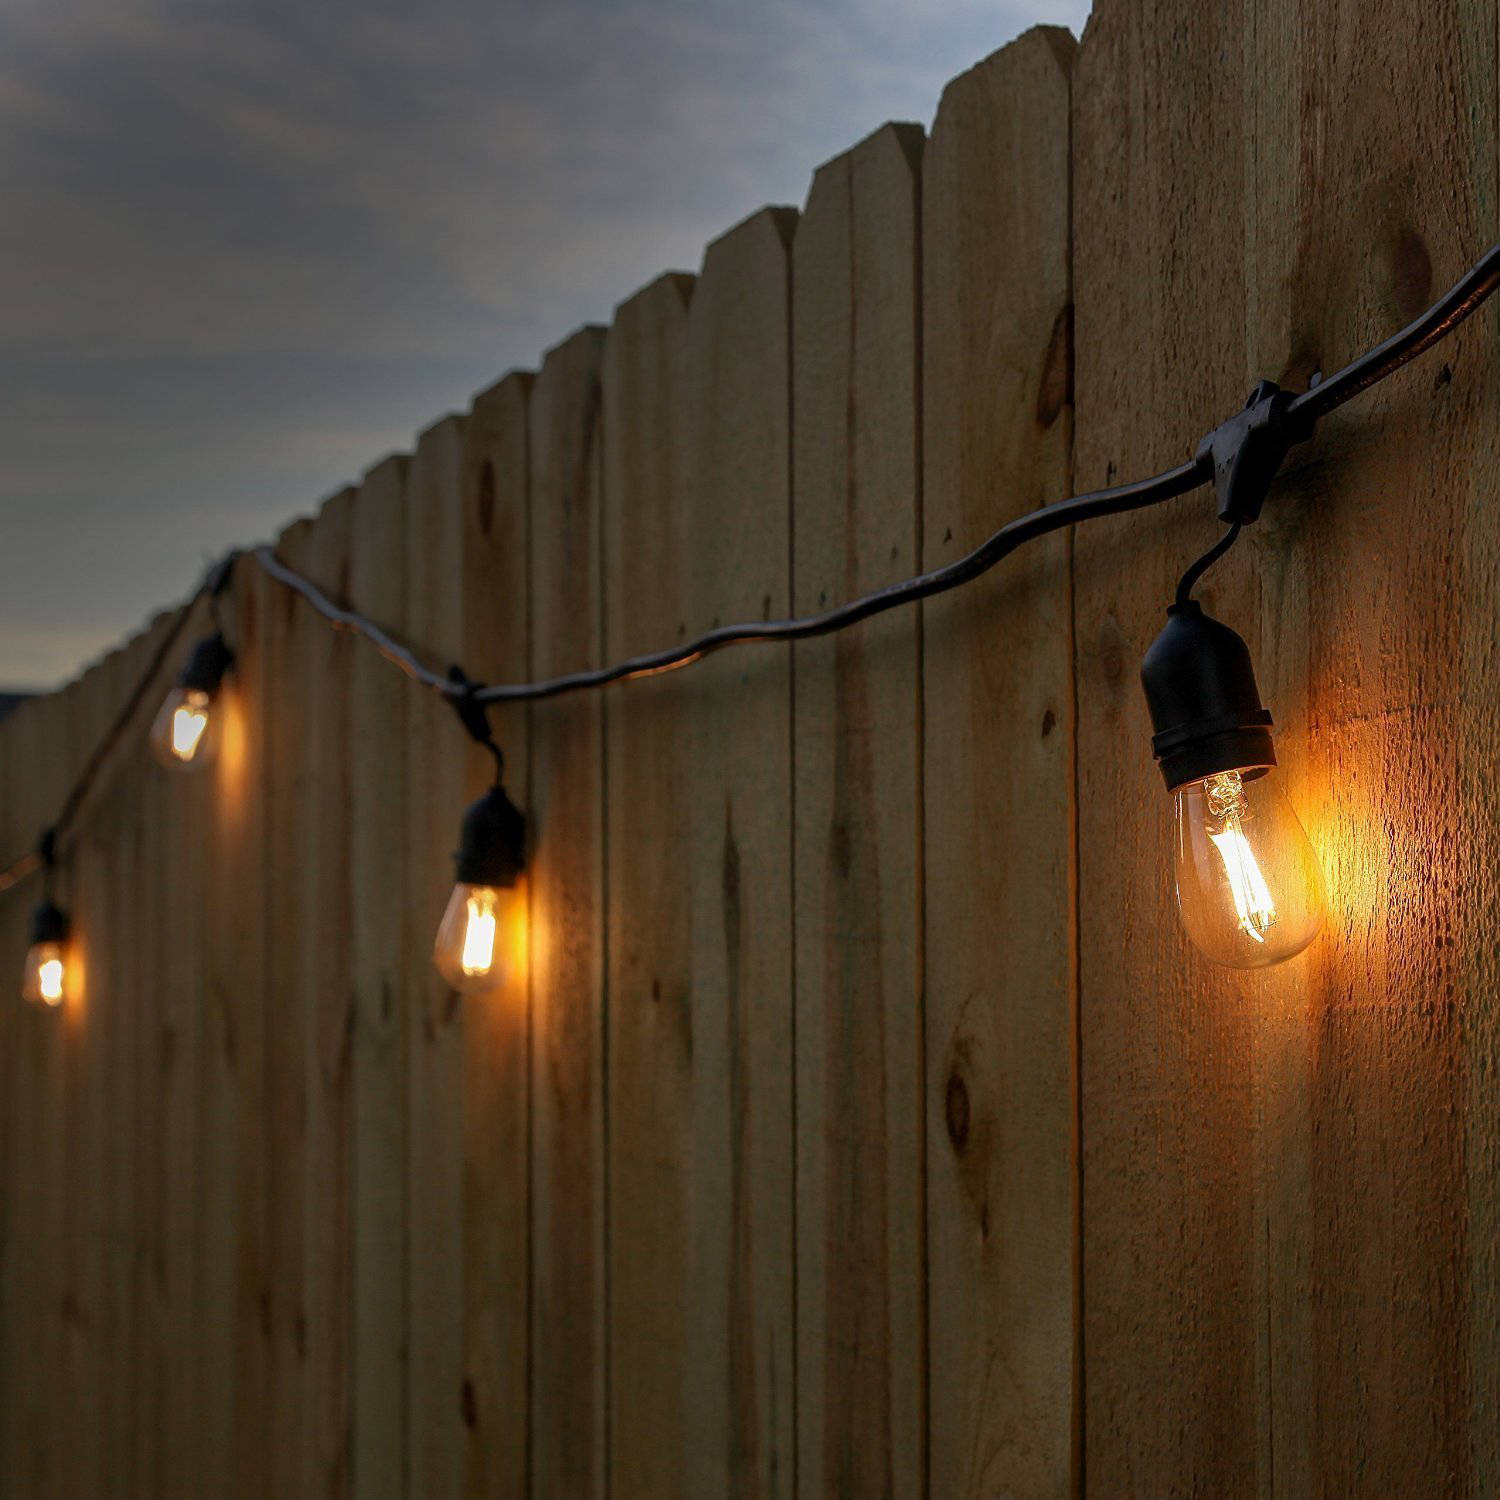 Newhouse Lighting 48 Foot Outdoor String Lights Led Bulbs: See More Hot 100 Lamps Light Fixtures